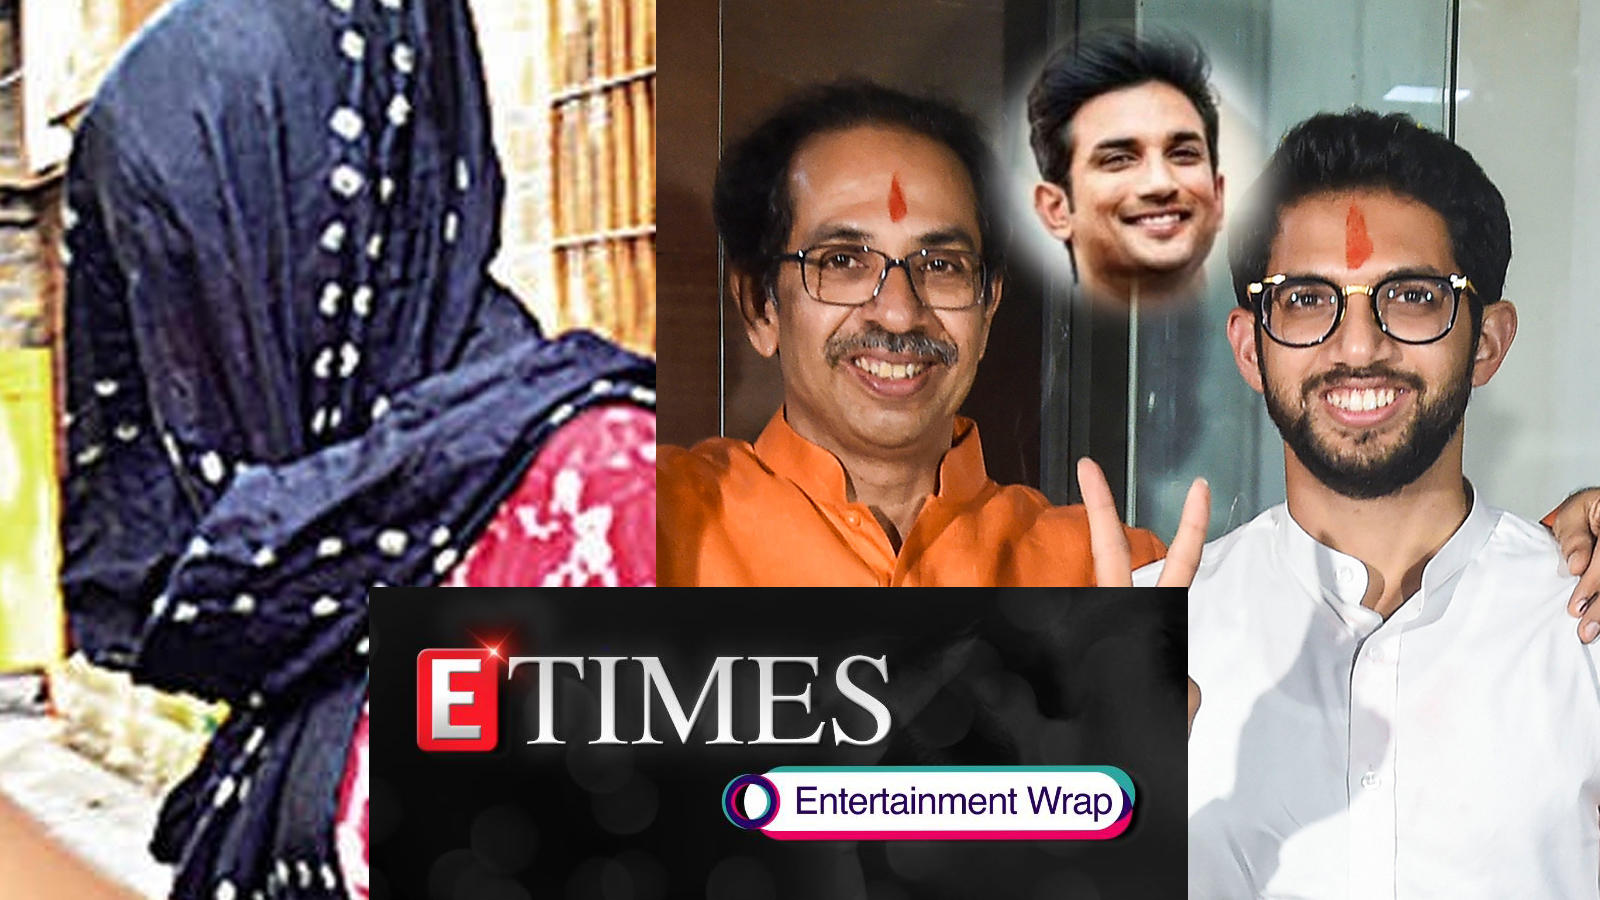 tv-actress-caught-red-handed-buying-ganja-as-ncb-raids-two-places-in-mumbai-uddhav-thackeray-defends-son-aaditya-for-the-first-time-after-his-name-was-dragged-in-sushant-singh-rajputs-death-case-and-more-